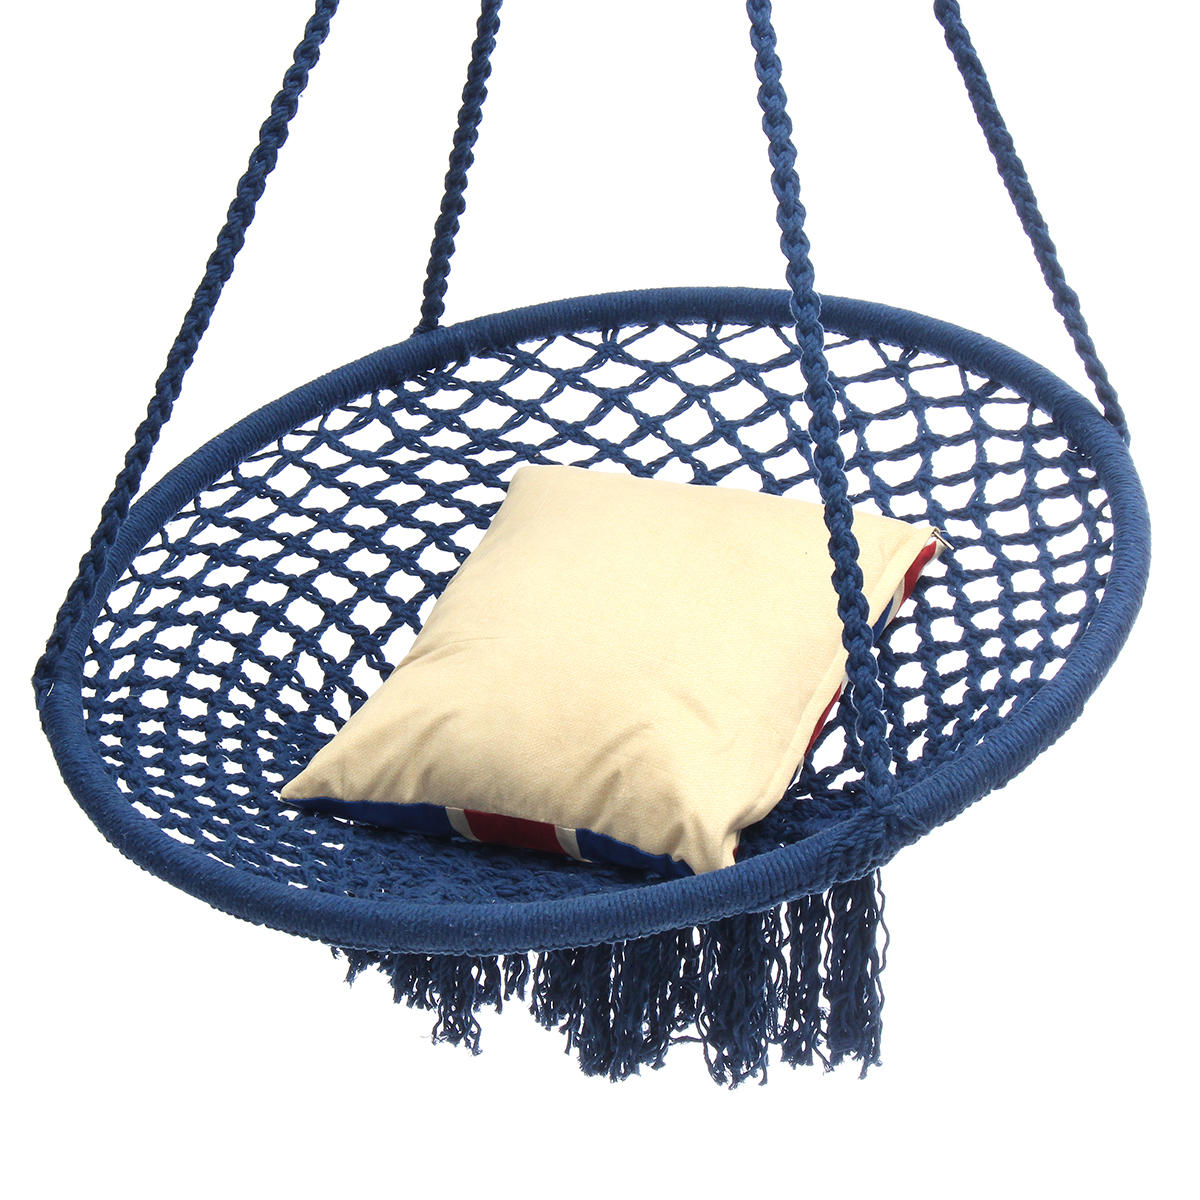 hanging zone chair baby room outdoor mesh cotton swing hammock camping